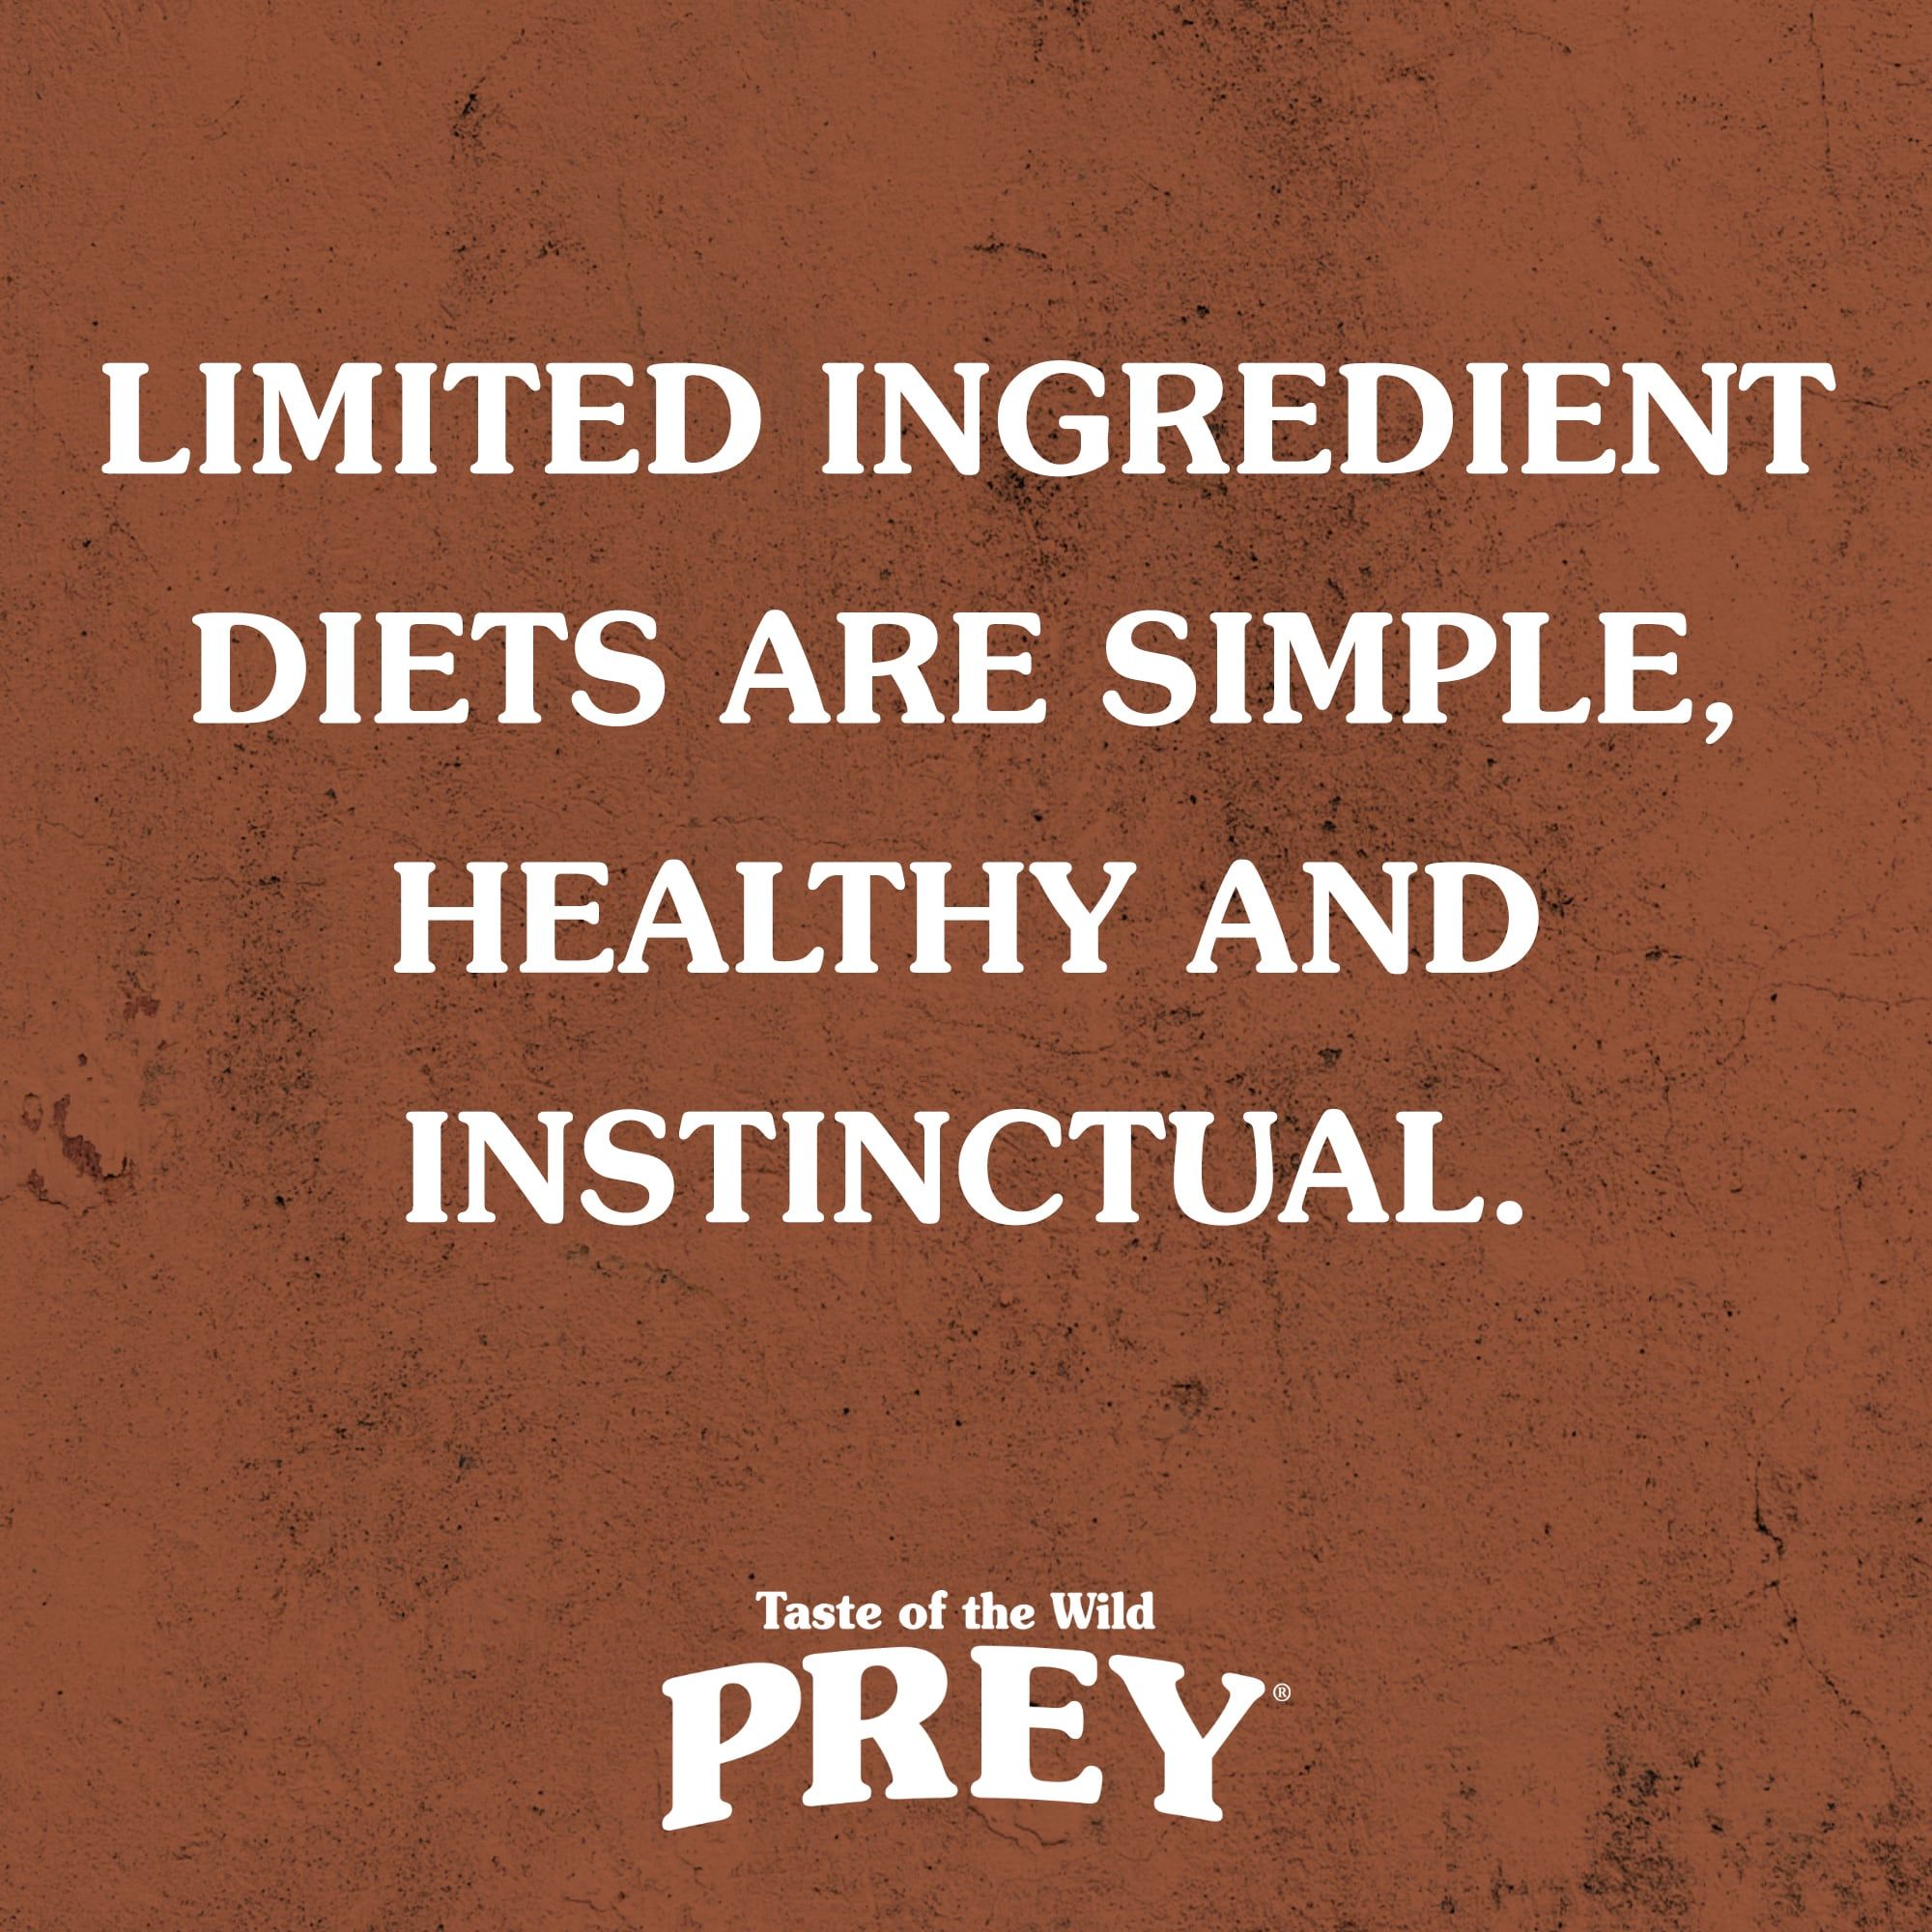 Limited-Ingredient Diets Are Simple, Healthy and Instinctual | Taste of the Wild